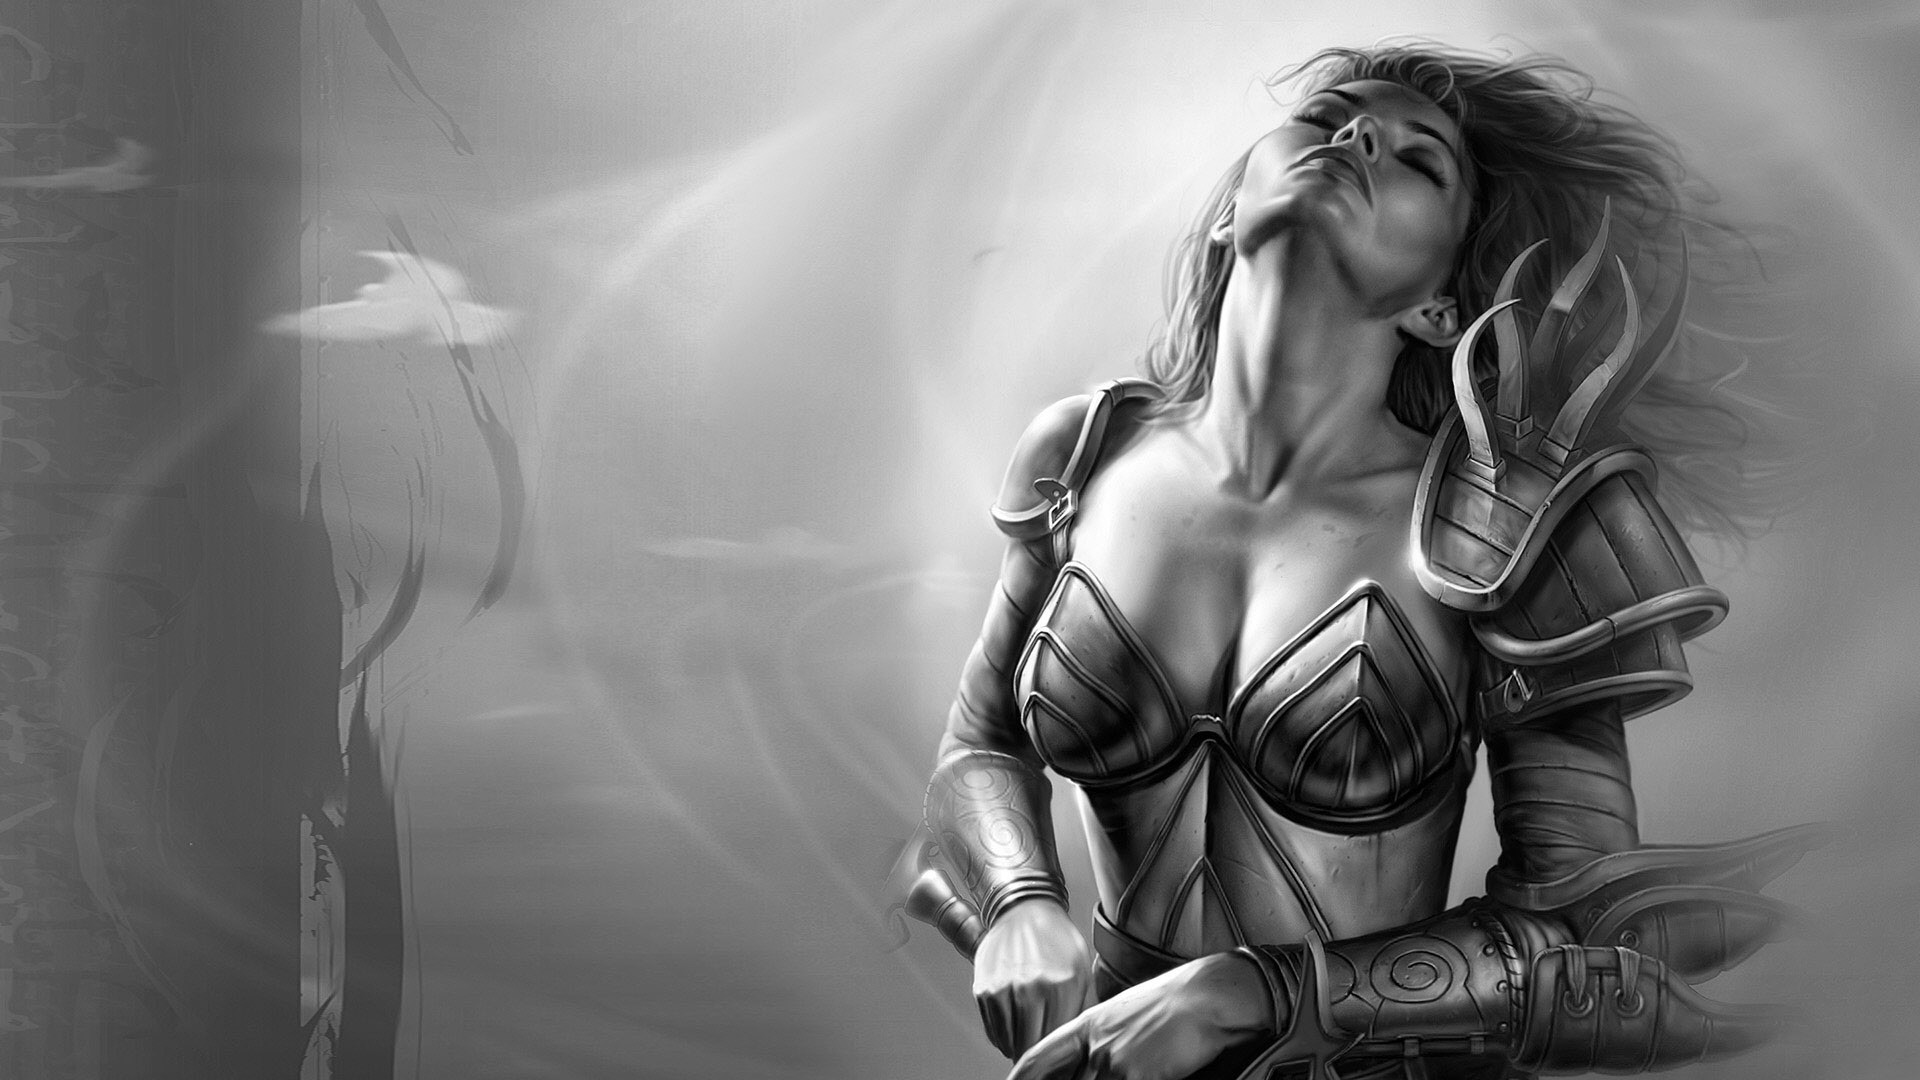 General 1920x1080 Aribeth de Tylmarande video games boobs fantasy girl closed eyes